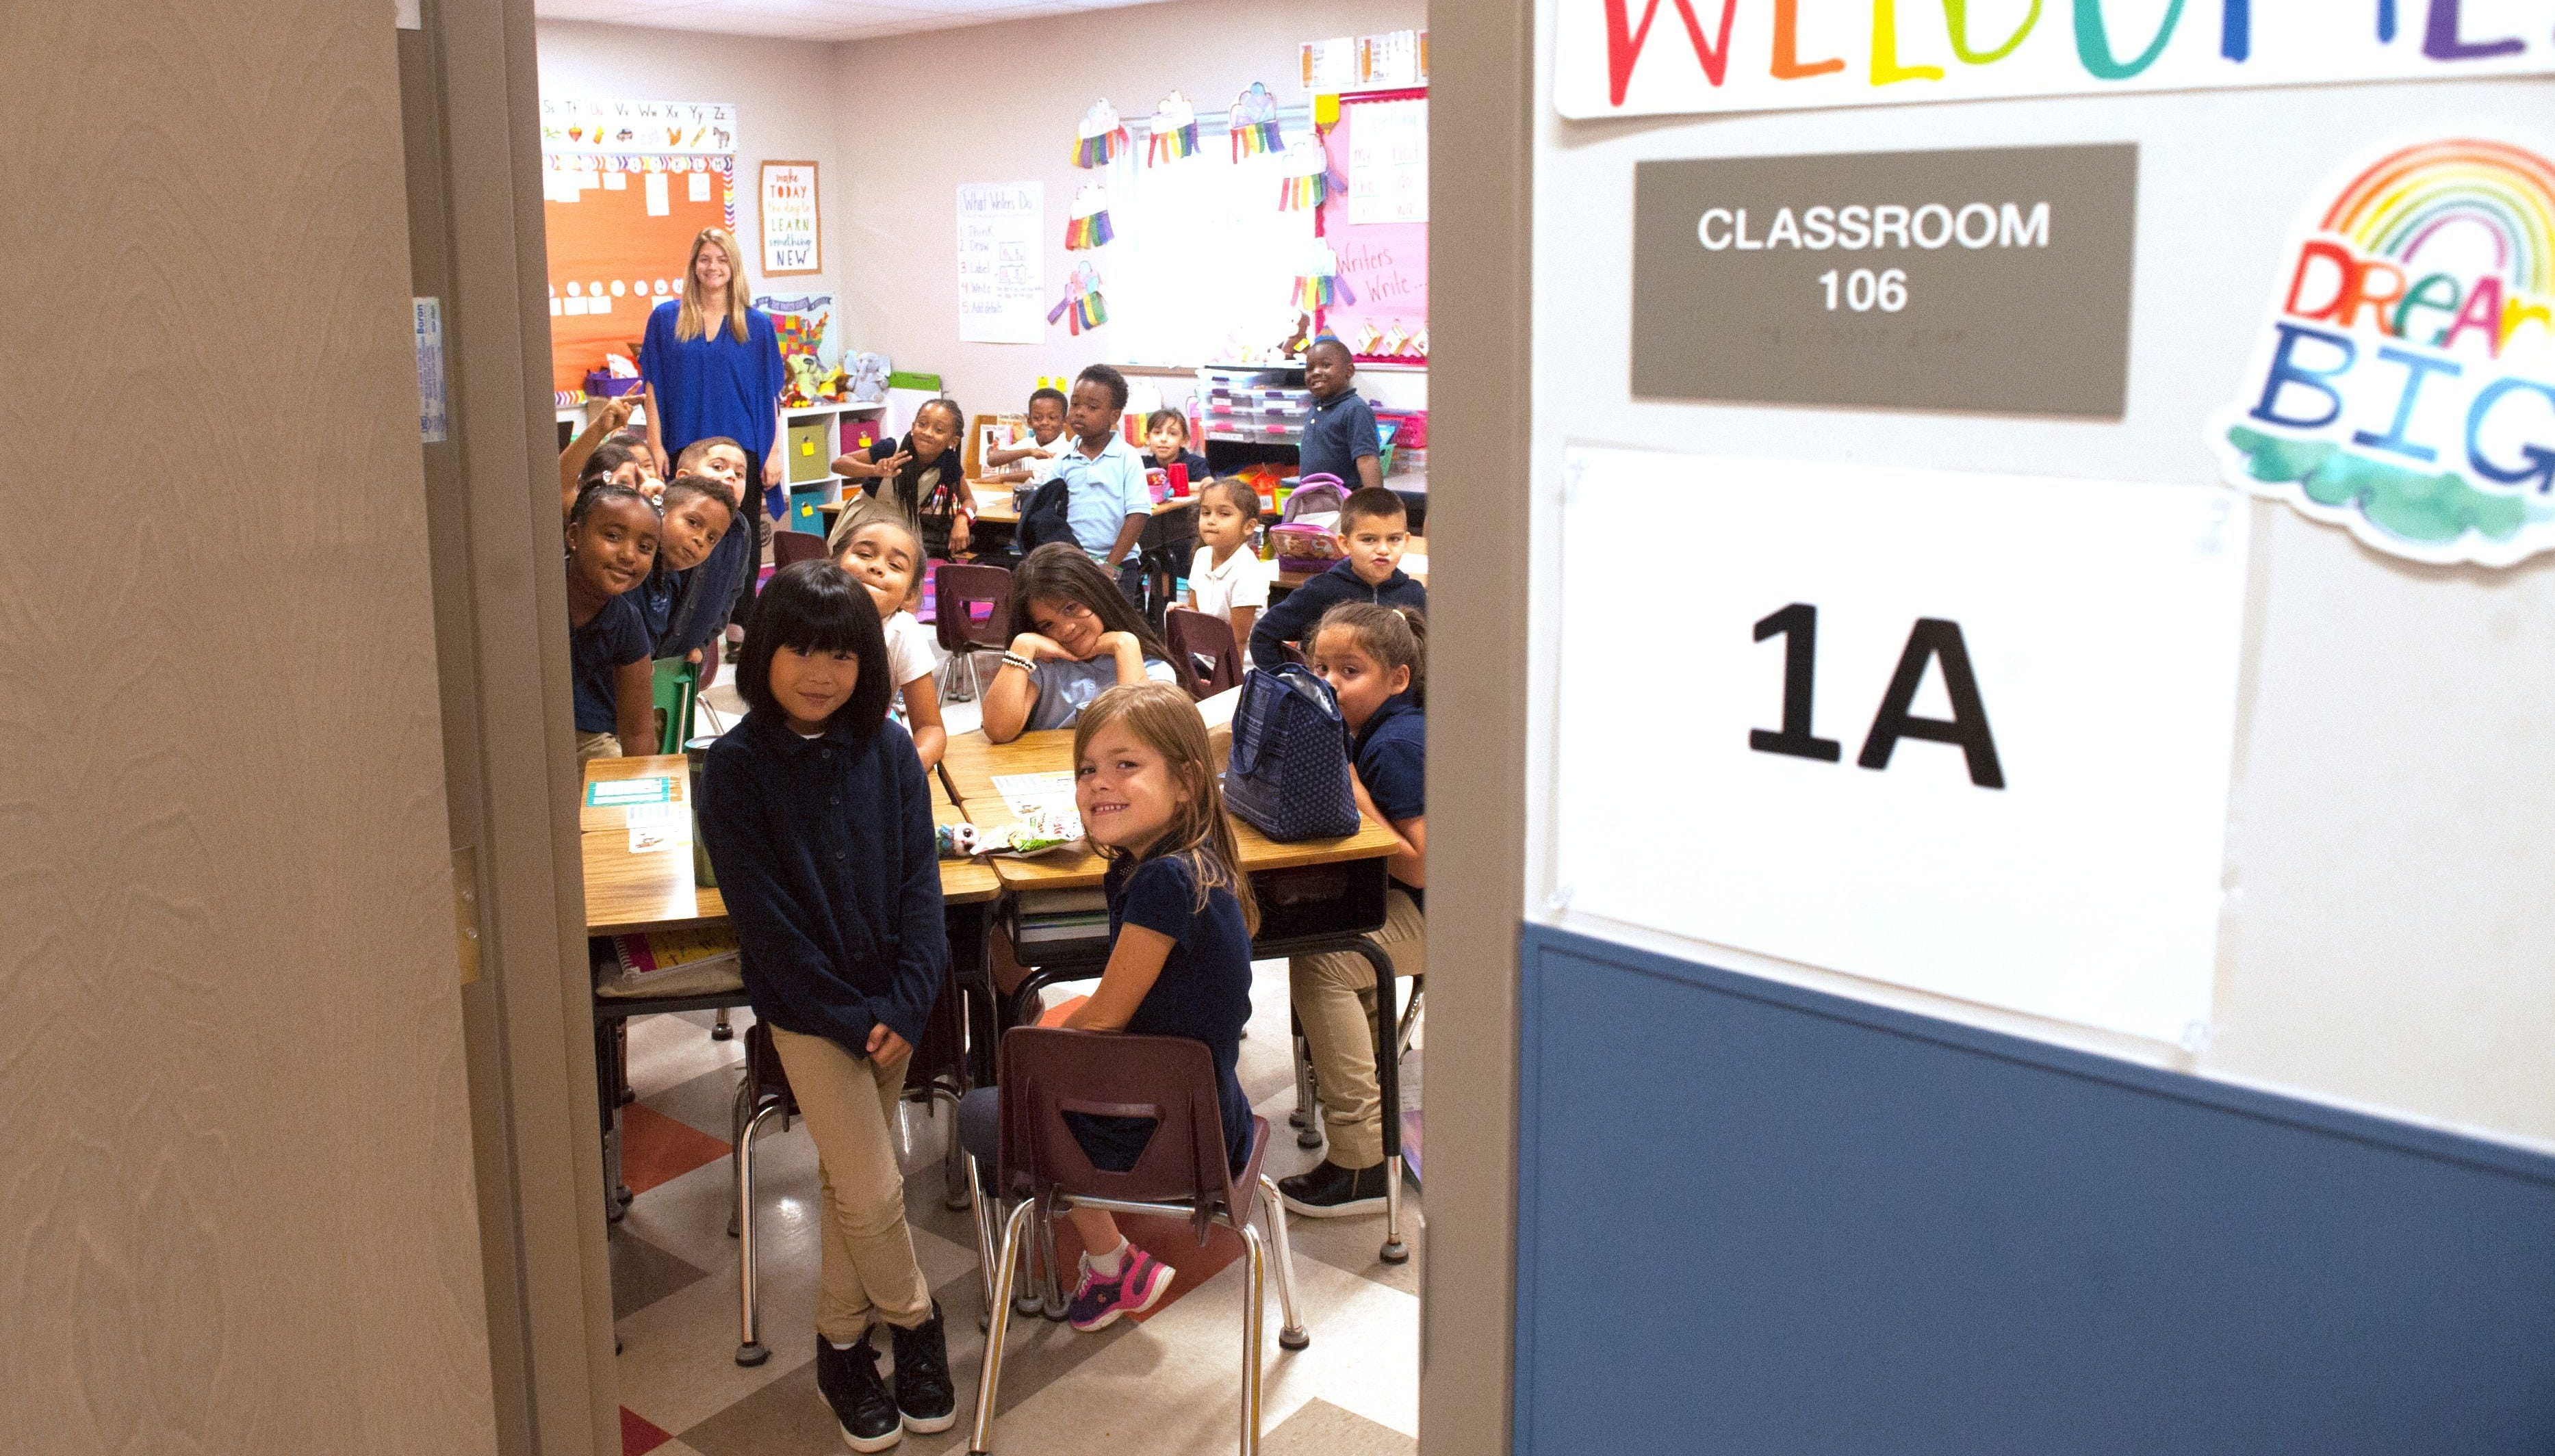 First-grade students pose for a photograph inside their classroom Friday at Vineland Public Charter School. First grade students posed for a photograph inside their classroom , Friday, Sept , 22, 2017,  minutes after the Ribbon Cutting Ceremony for the new Vineland Public Charter School, Vineland. N.J.